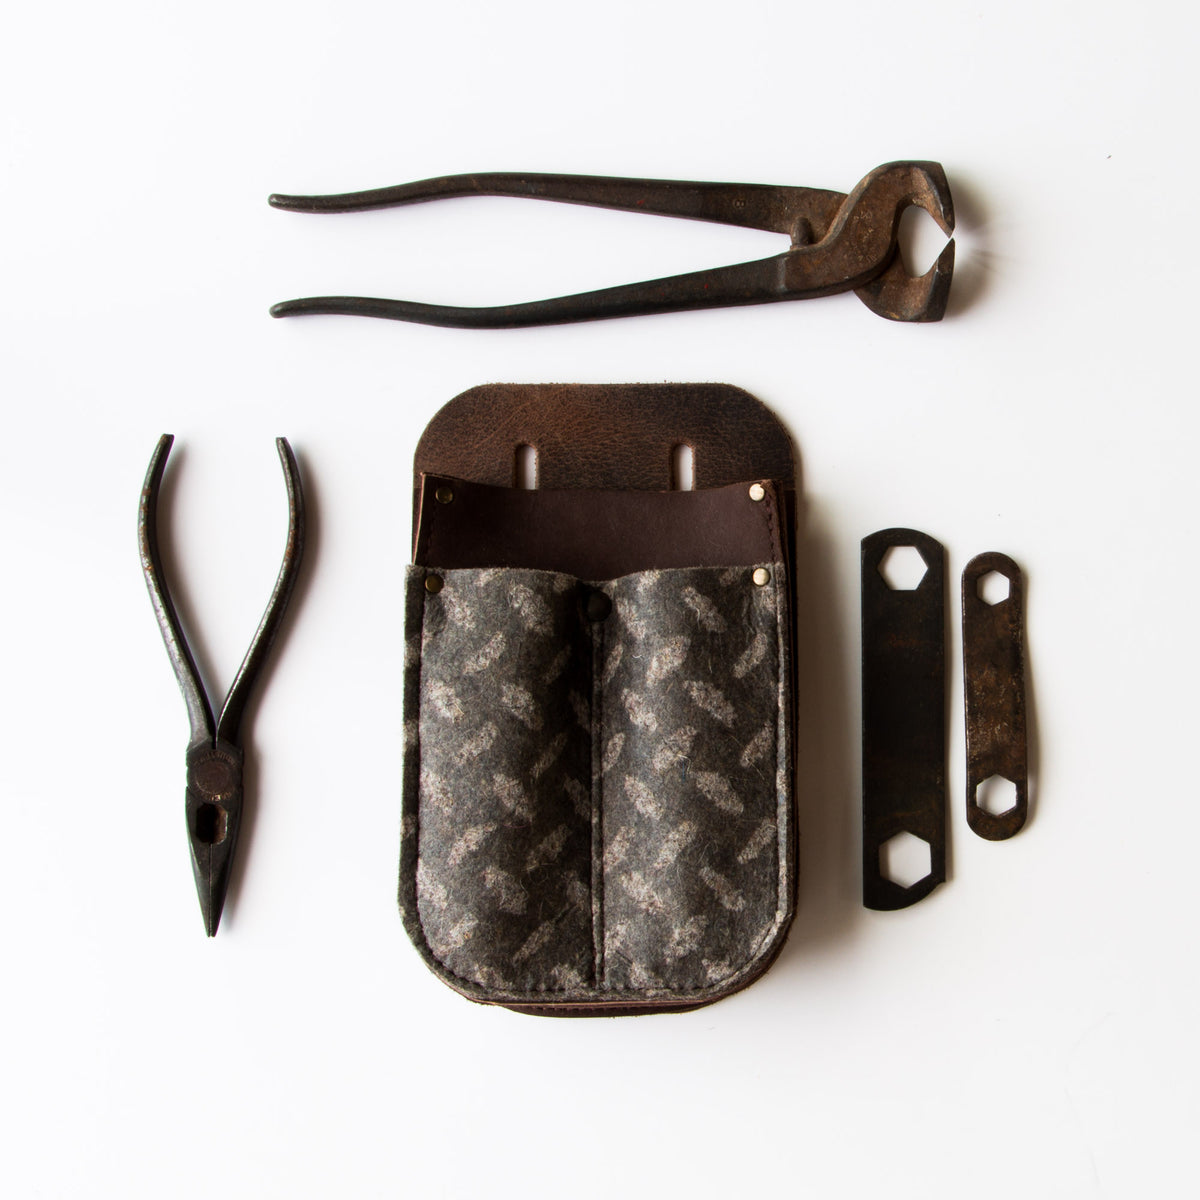 Top View - Leather & Felt Tool Holder / Pouch - Handmade in Canada - Chic & Basta